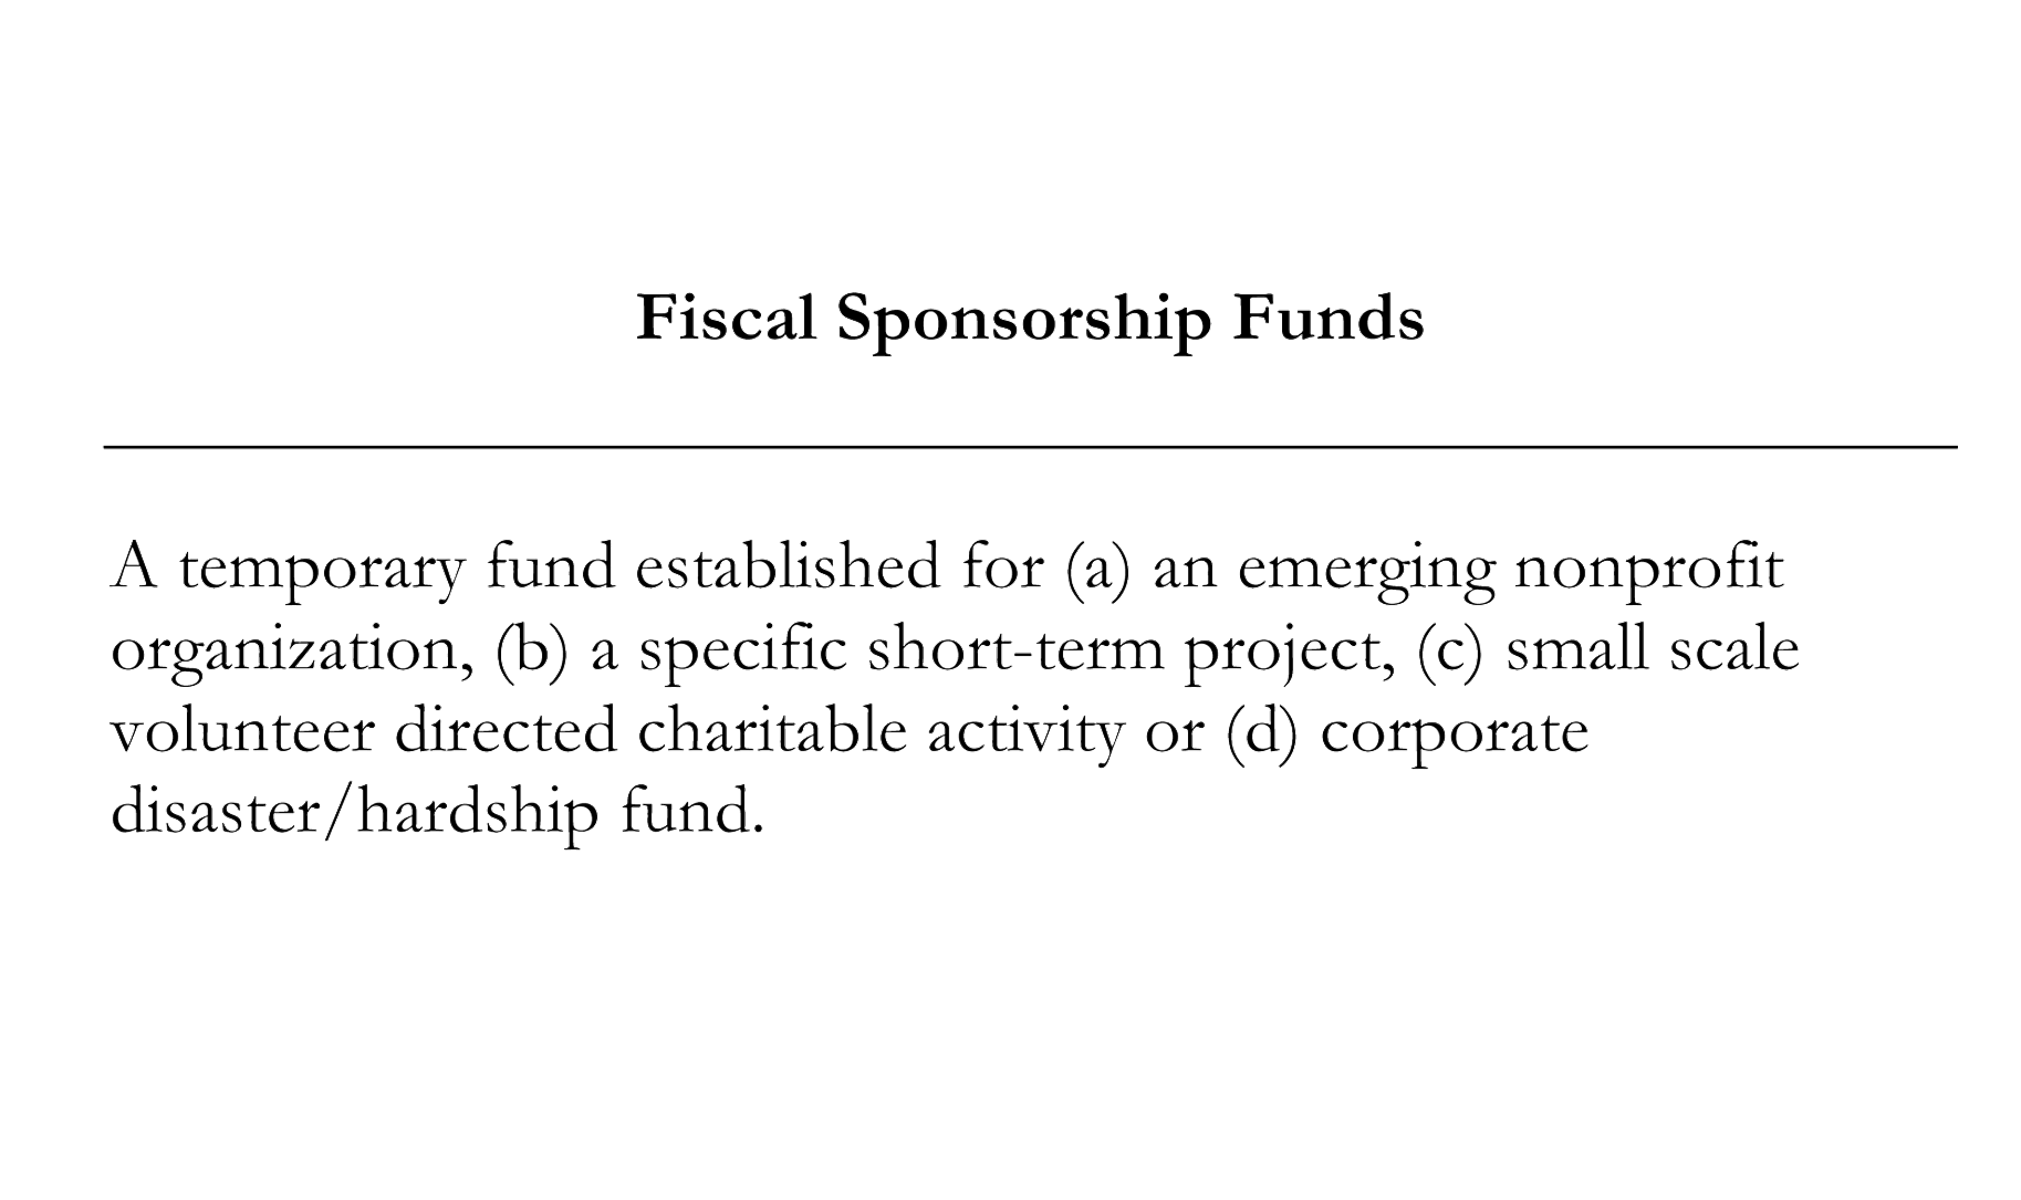 Fiscal Sponsorship Funds.png